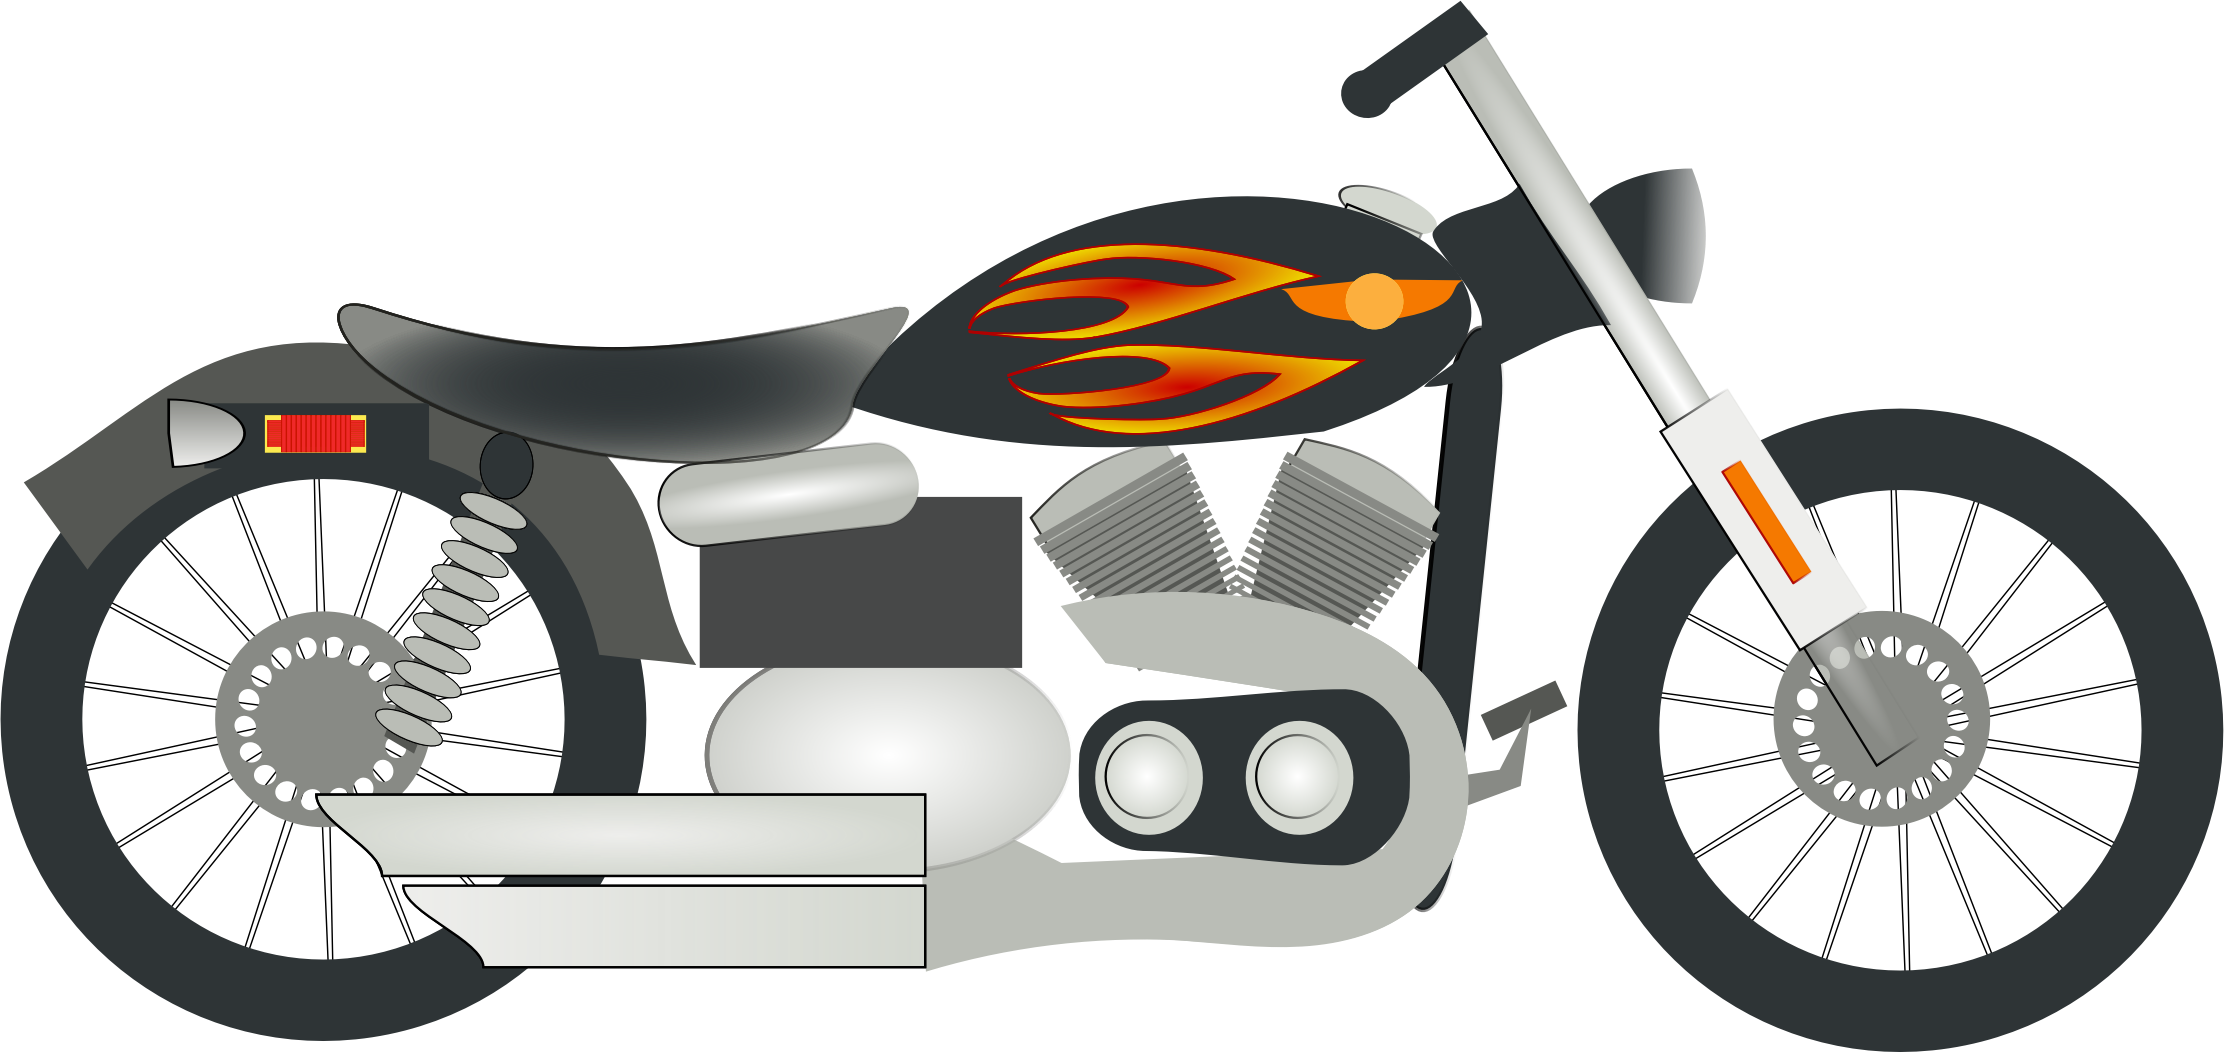 Harley big image png. Motorcycle clipart motorcycle shop